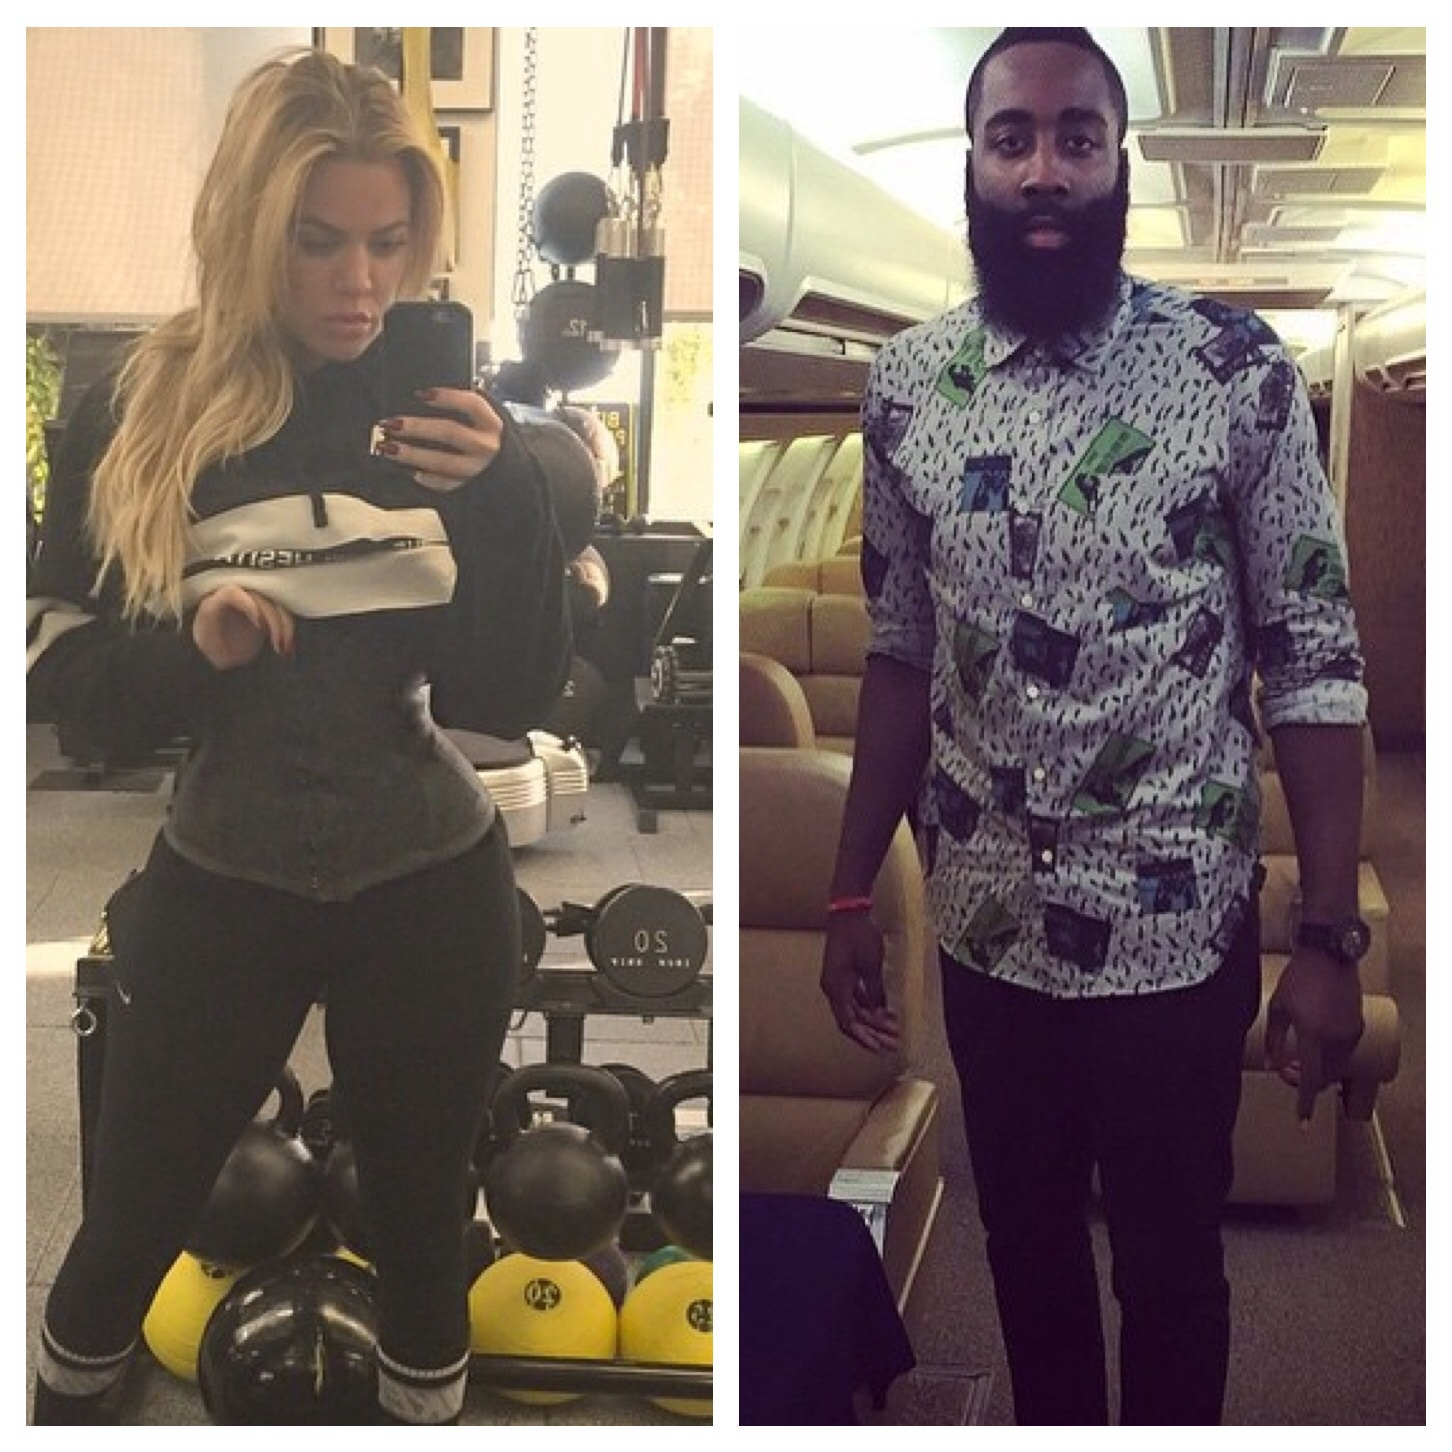 james harden and khloe kardashian relationship history